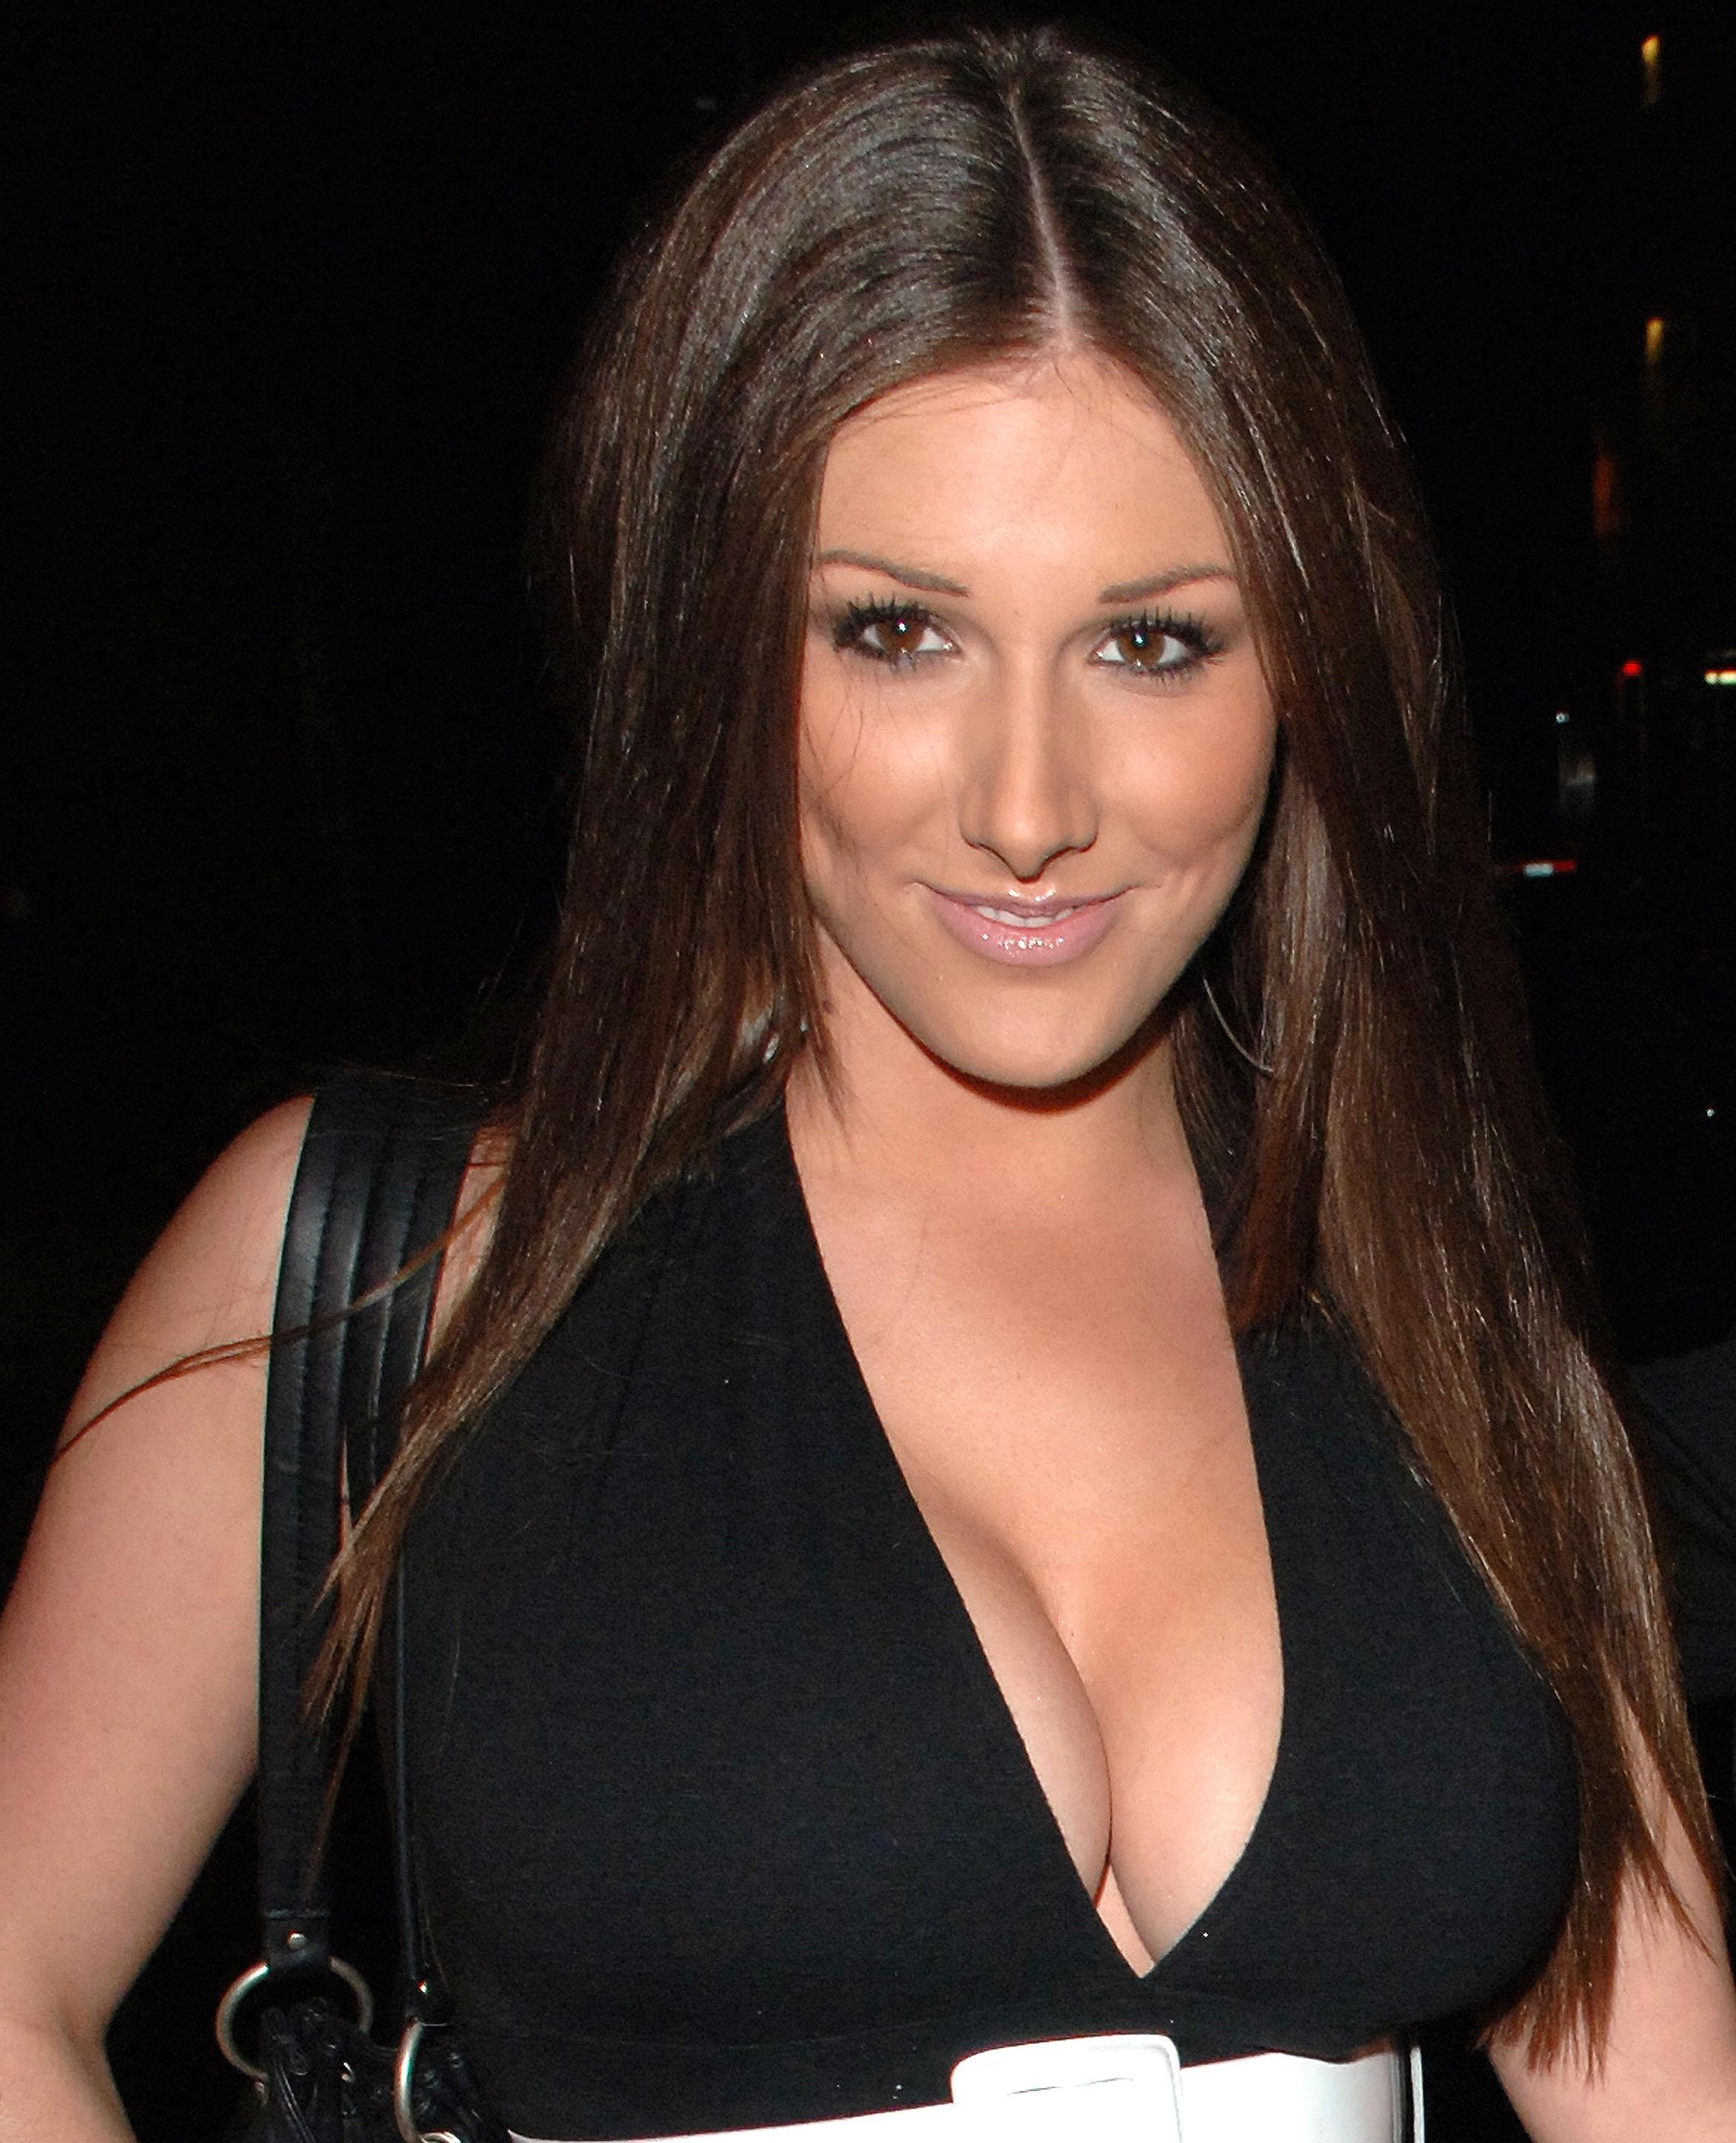 Sideboobs Photos Lucy Pinder naked photo 2017